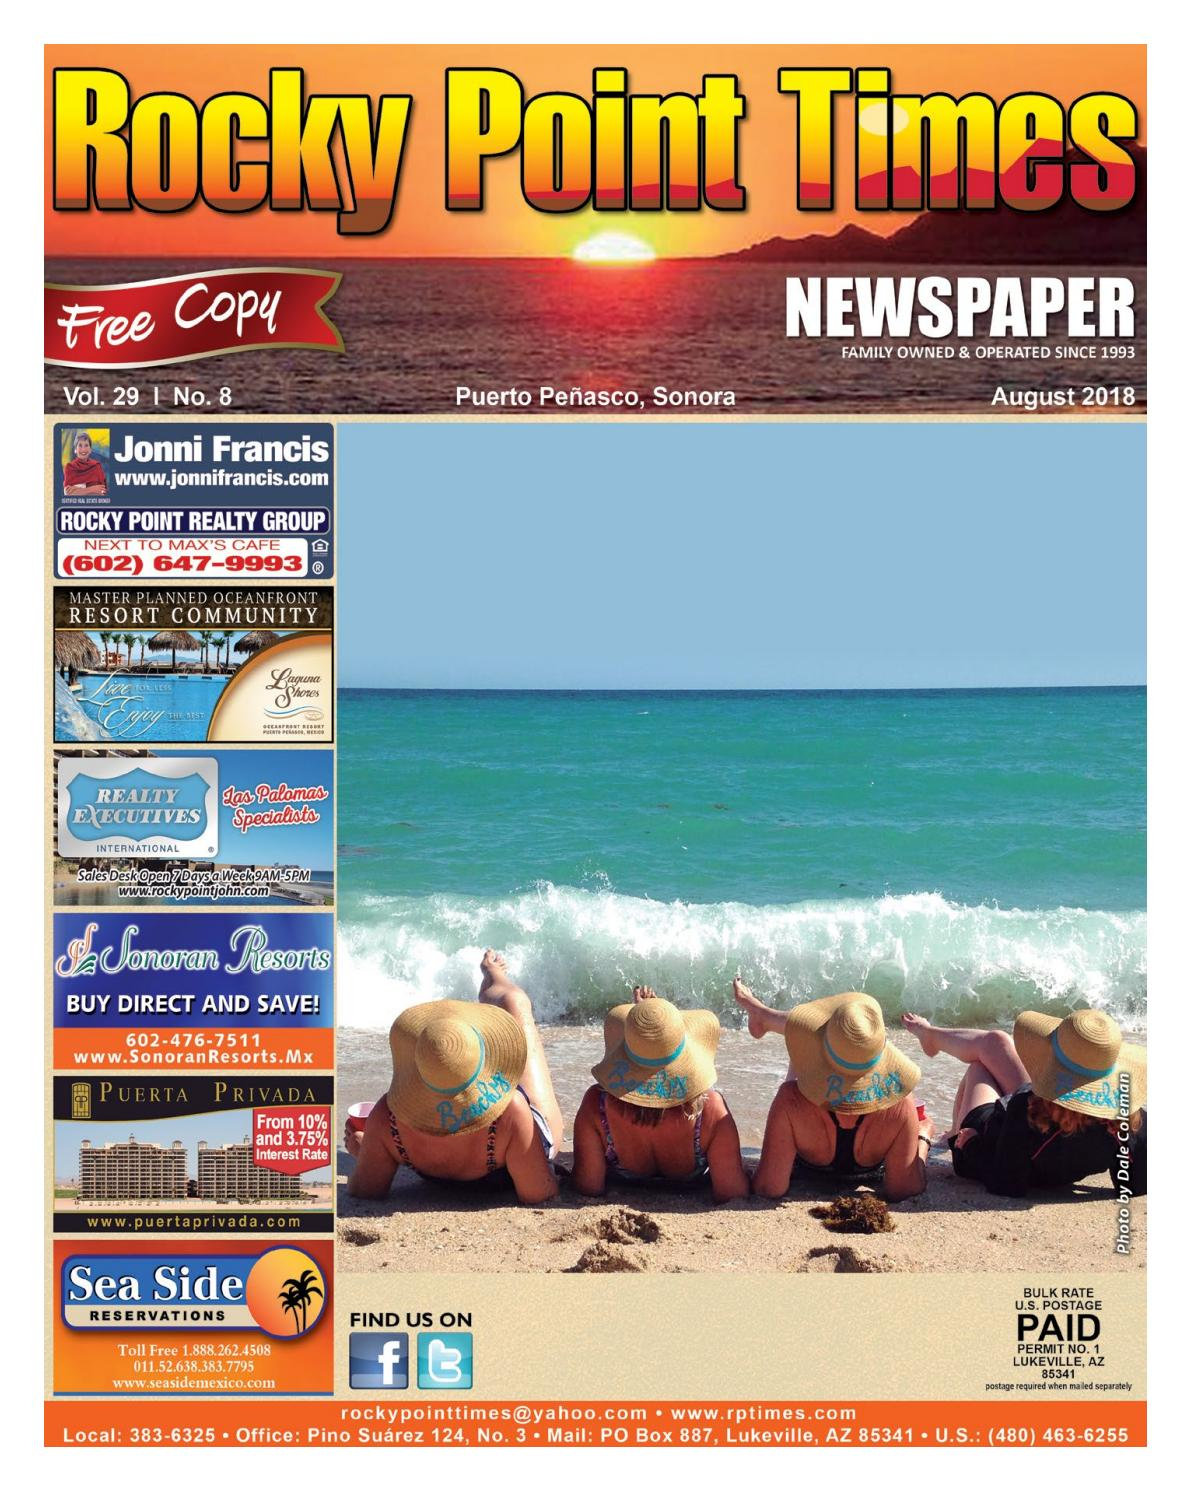 Rocky Point Times - August 2018 by Rocky Point Services - issuu